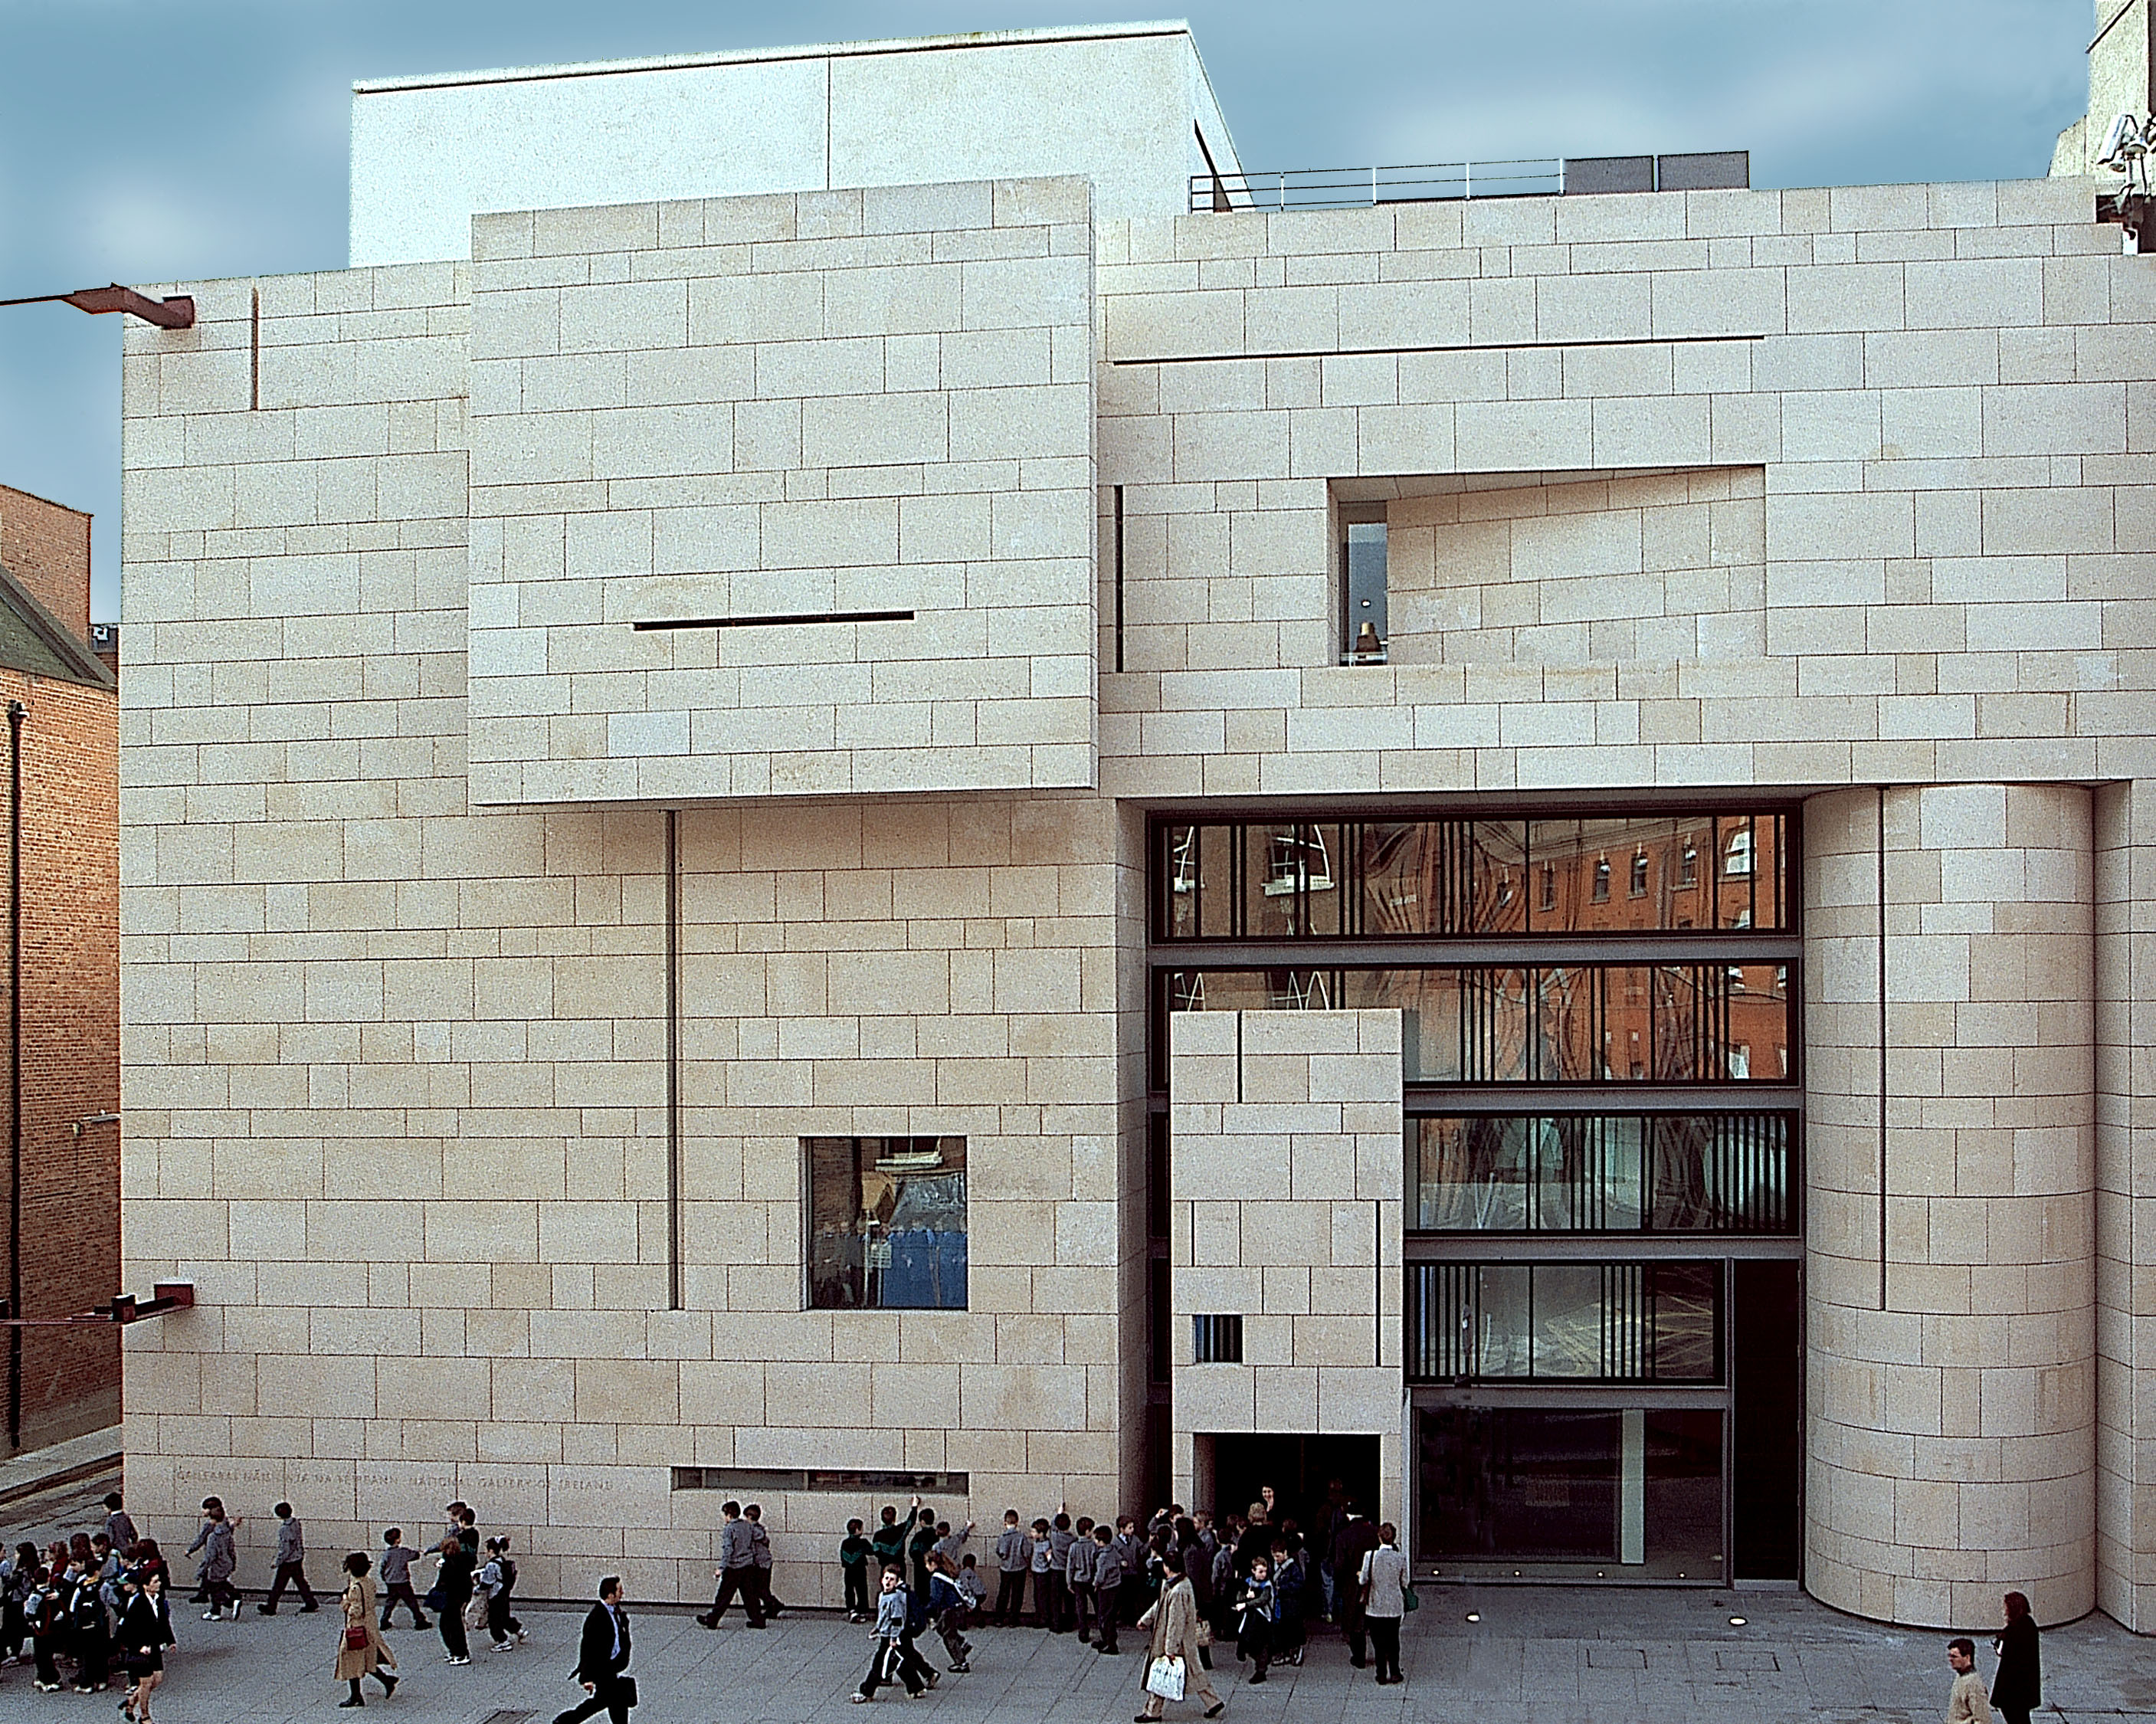 Visit the National Gallery of Ireland in style with a limo! - Absolute Limos